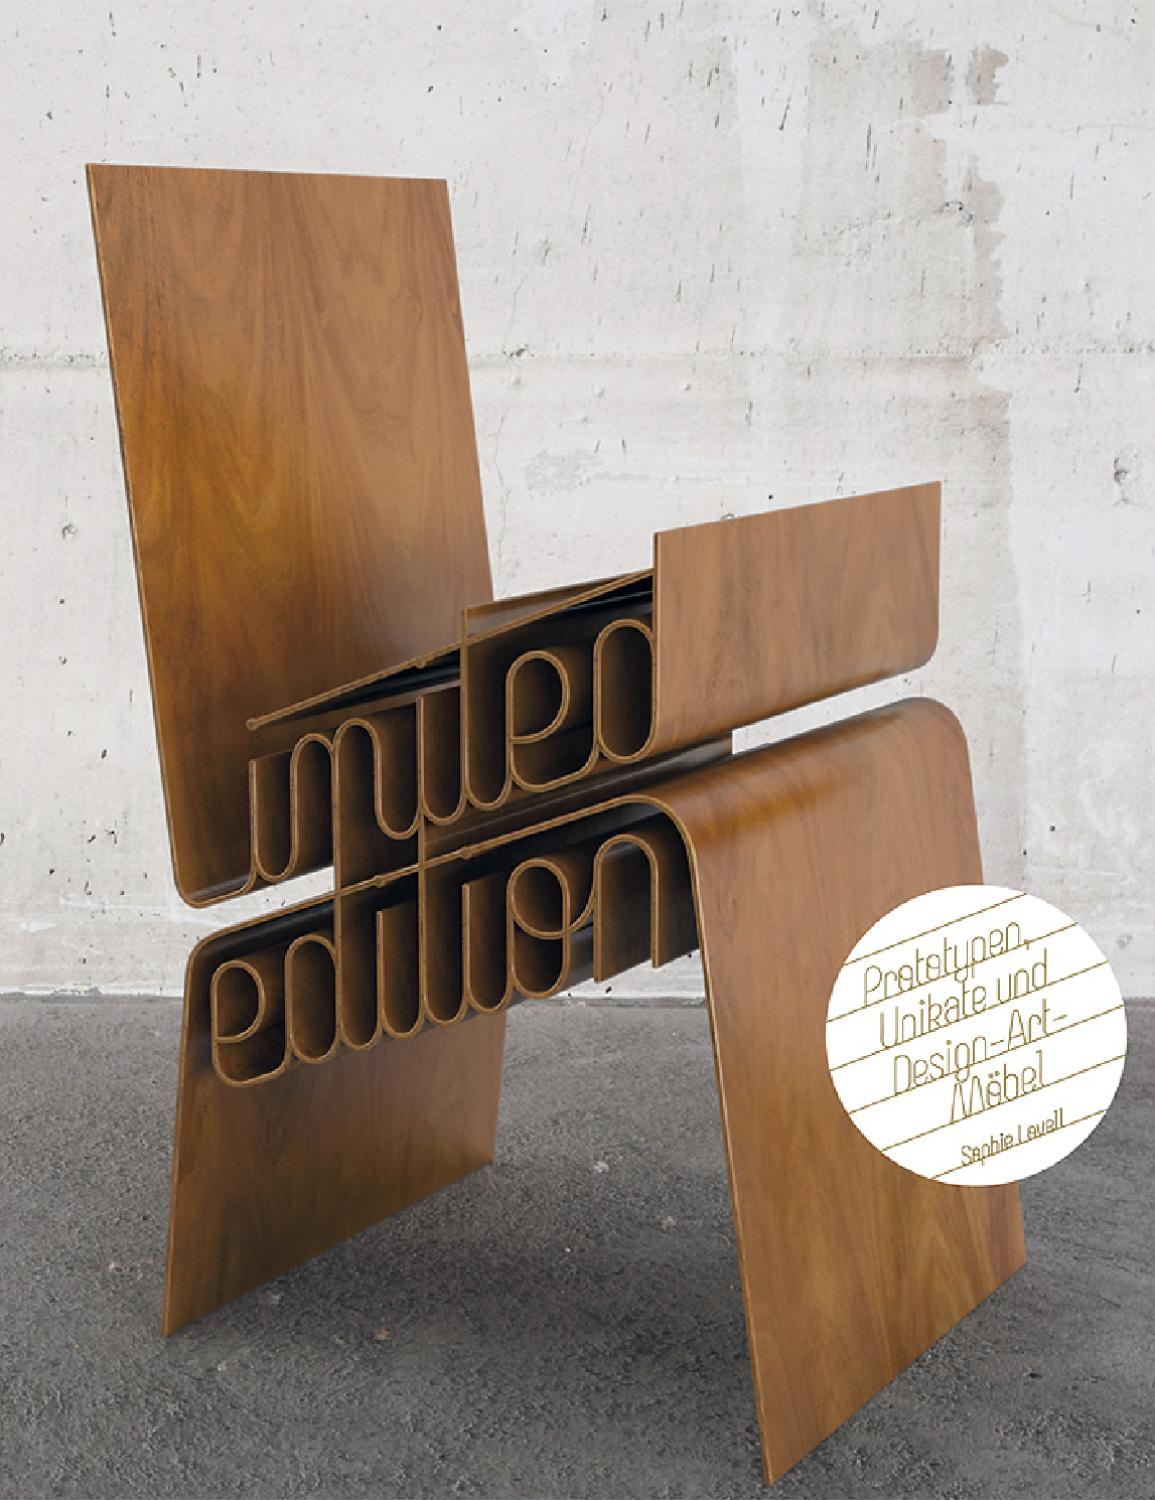 Möbel Unikate Limited Edition – Prototypen, Unikate Und Design-art-möbel By Birkhäuser - Issuu